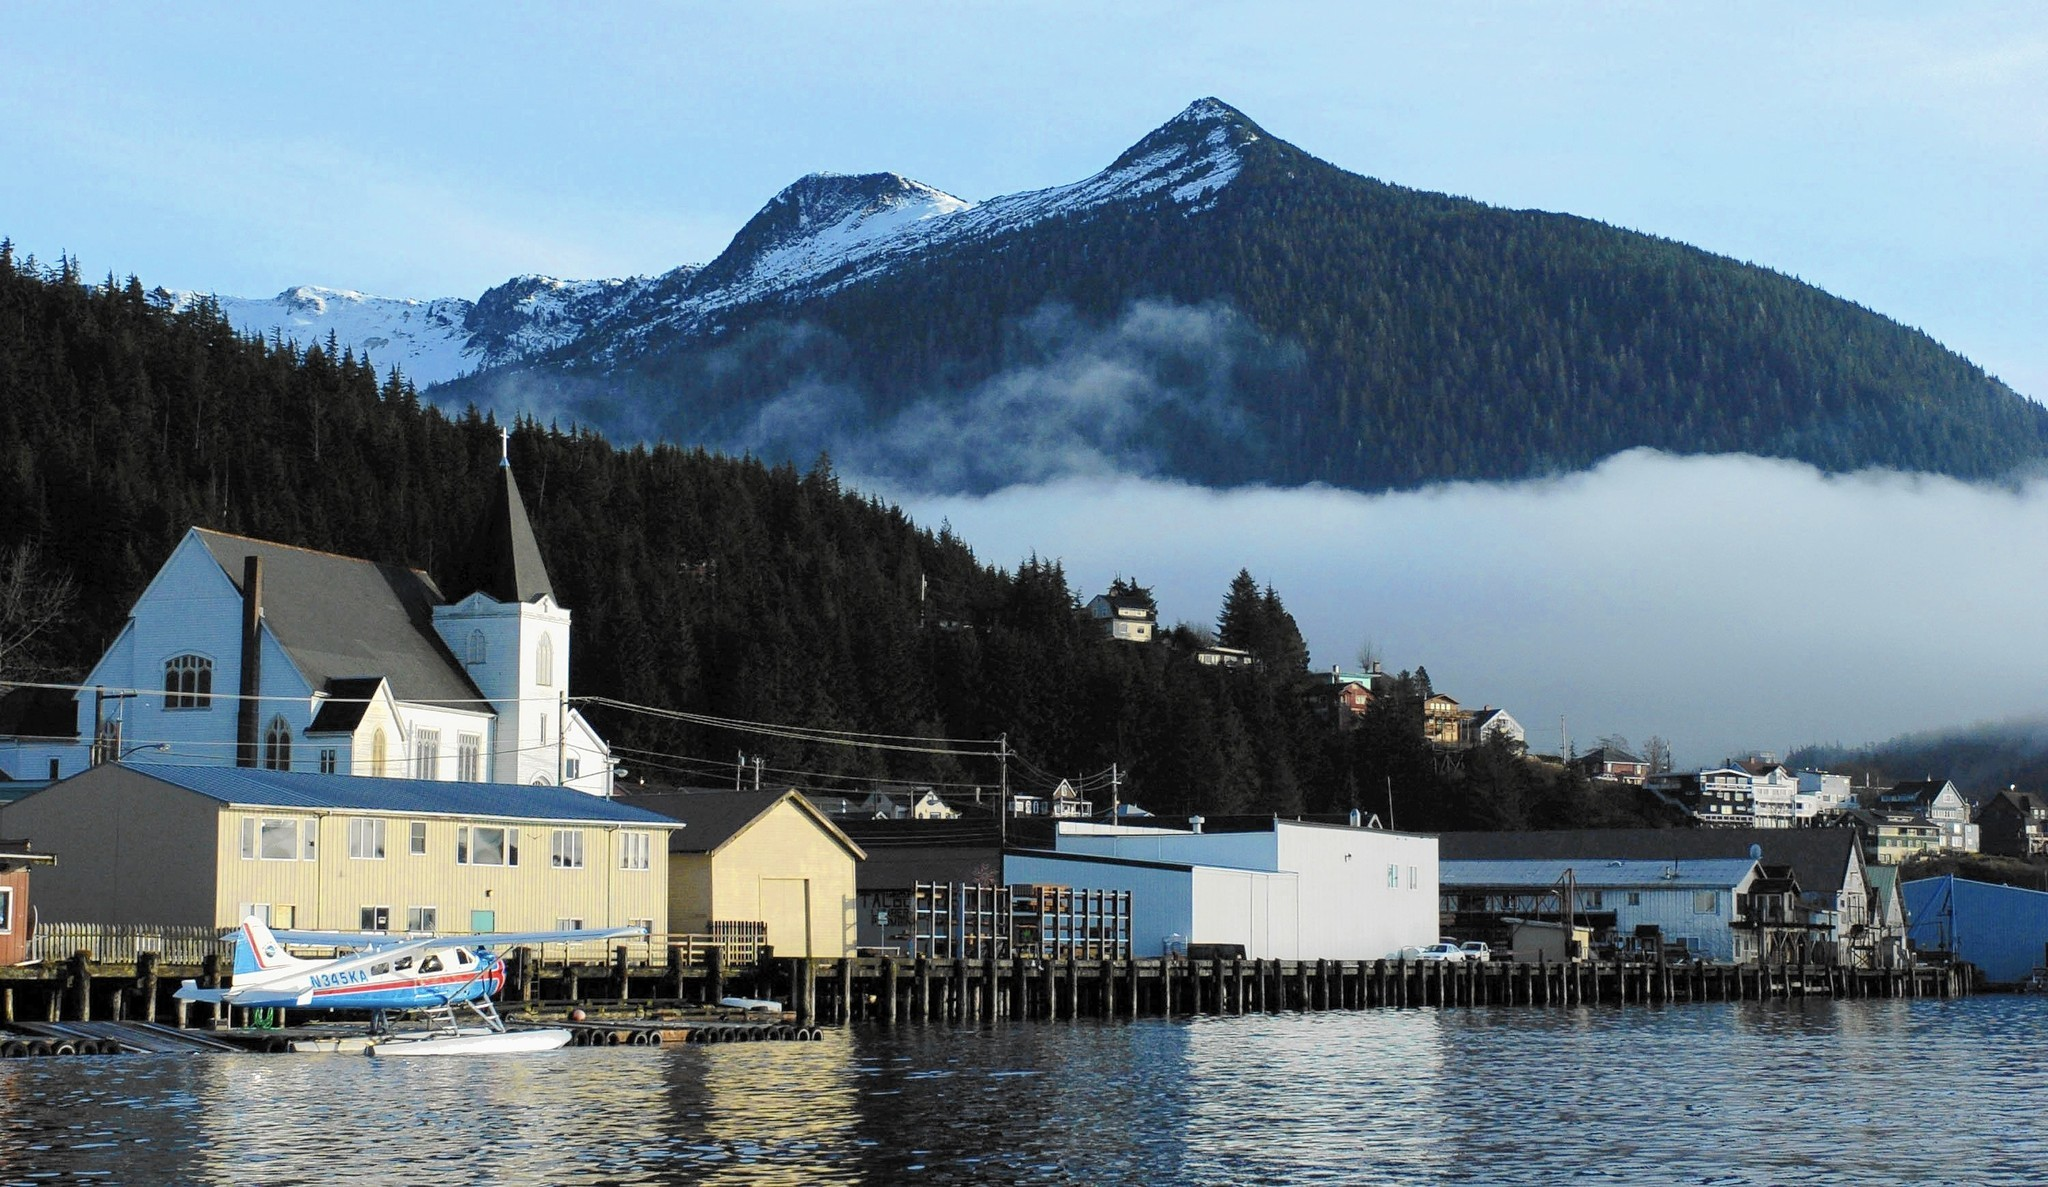 $625 for a 7-day cruise to Alaska, among other travel deals